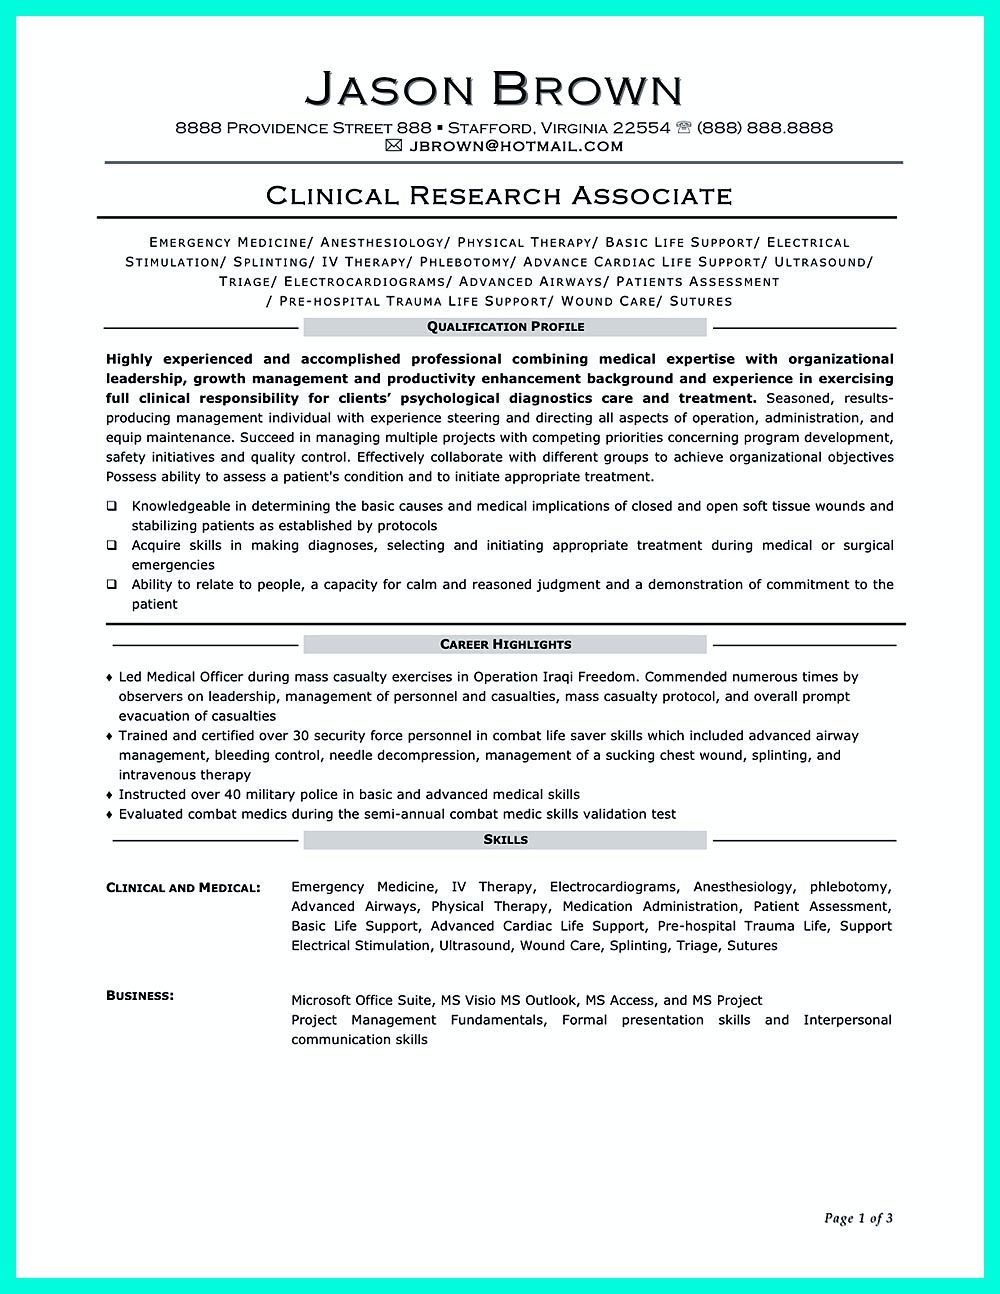 making clinical research associate resume is sometimes not easy  but  do not worry since there